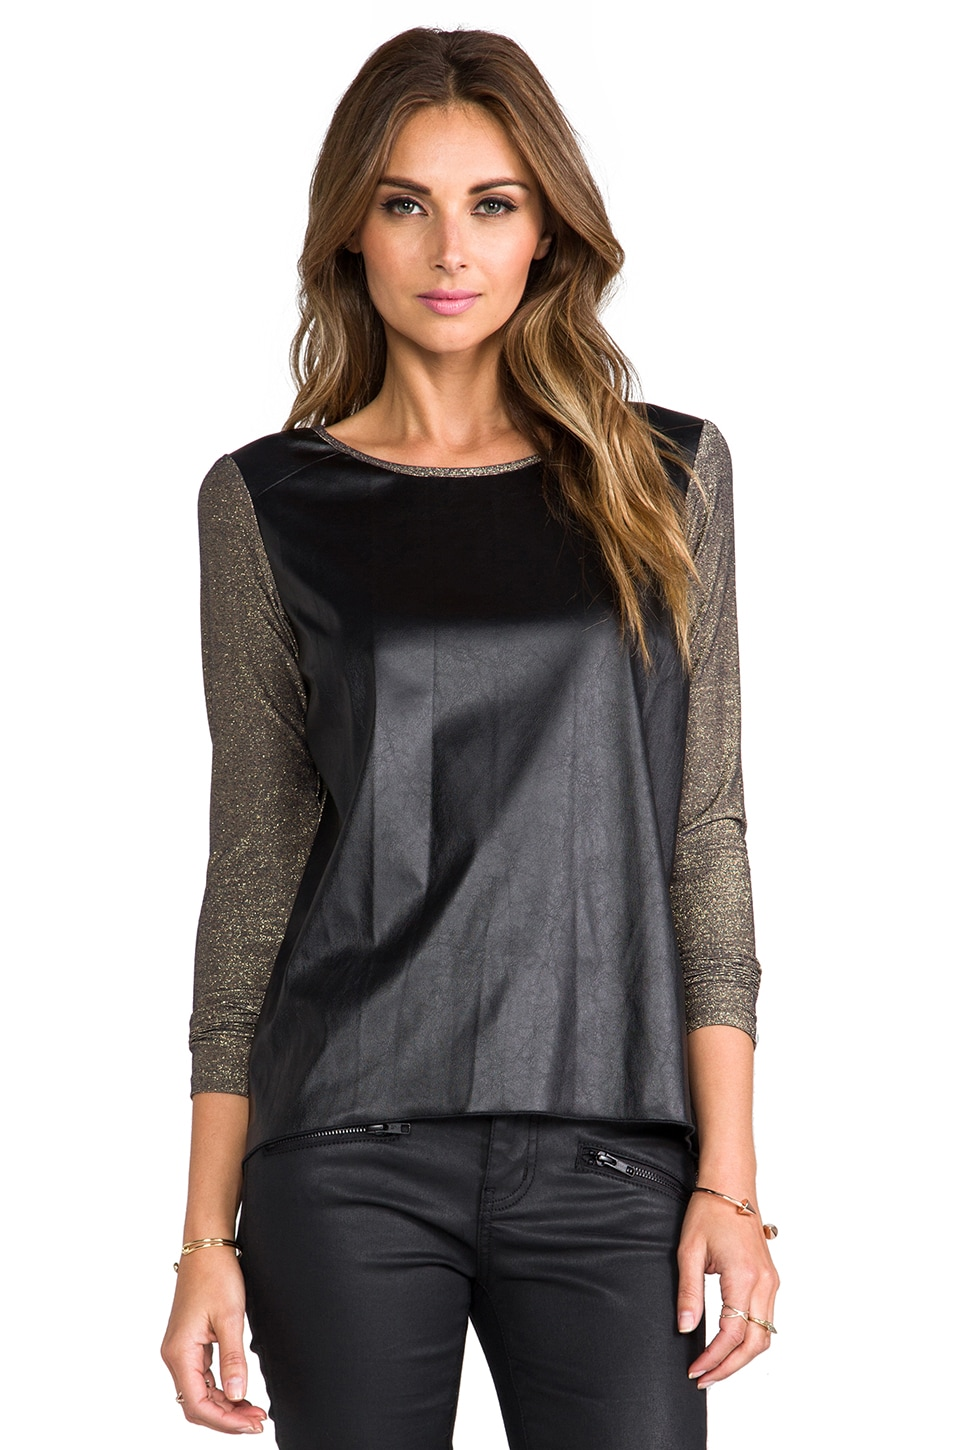 Generation Love Phoenix Lurex Leather Long Sleeve Tee in Bronze